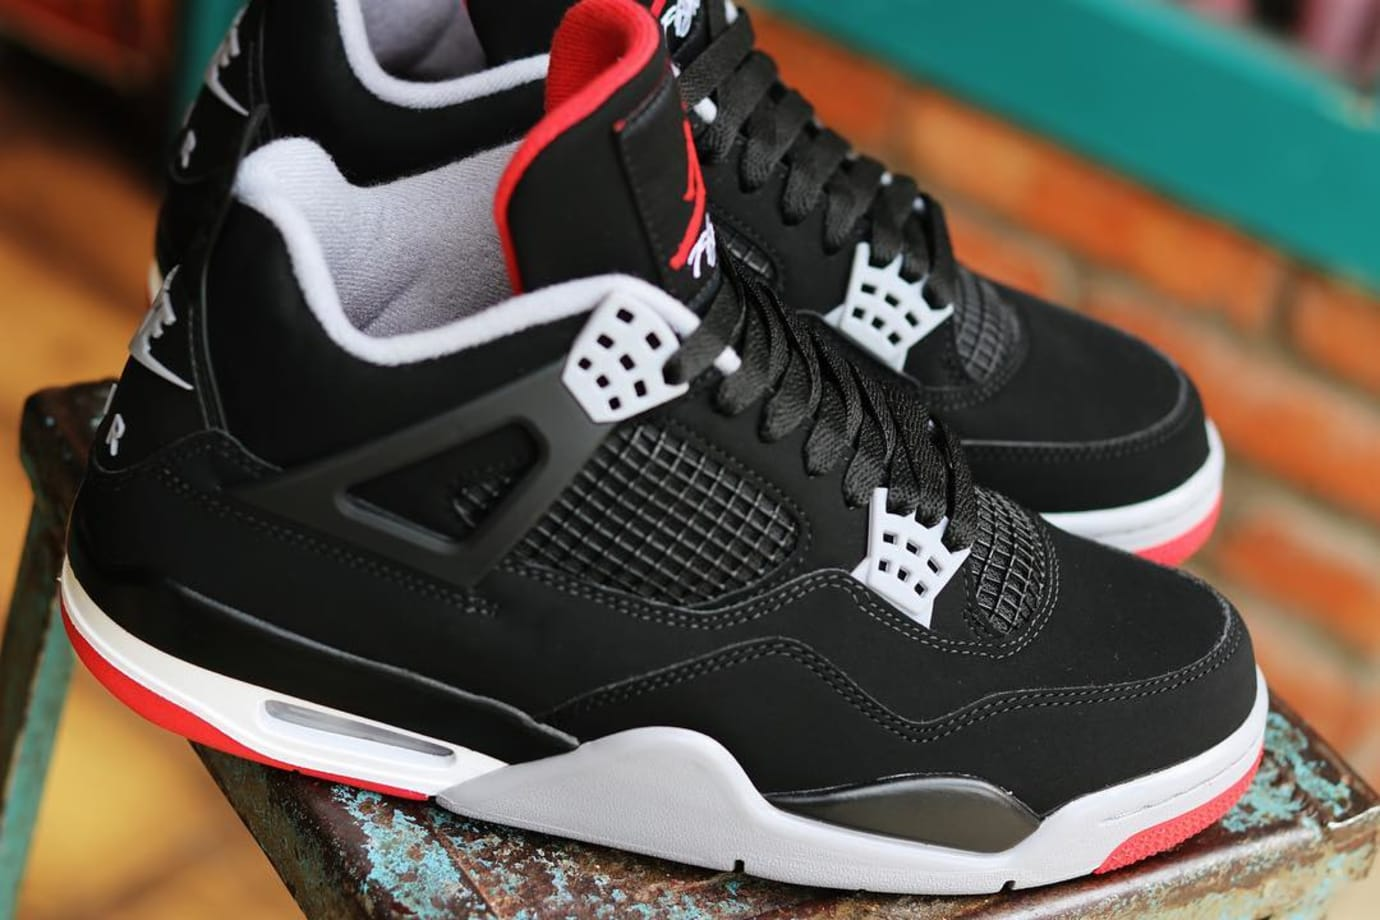 b619c59ef10 Image via ylt r3 · Air Jordan 4 2019  Bred  308497-060 Early Look Lateral  Side